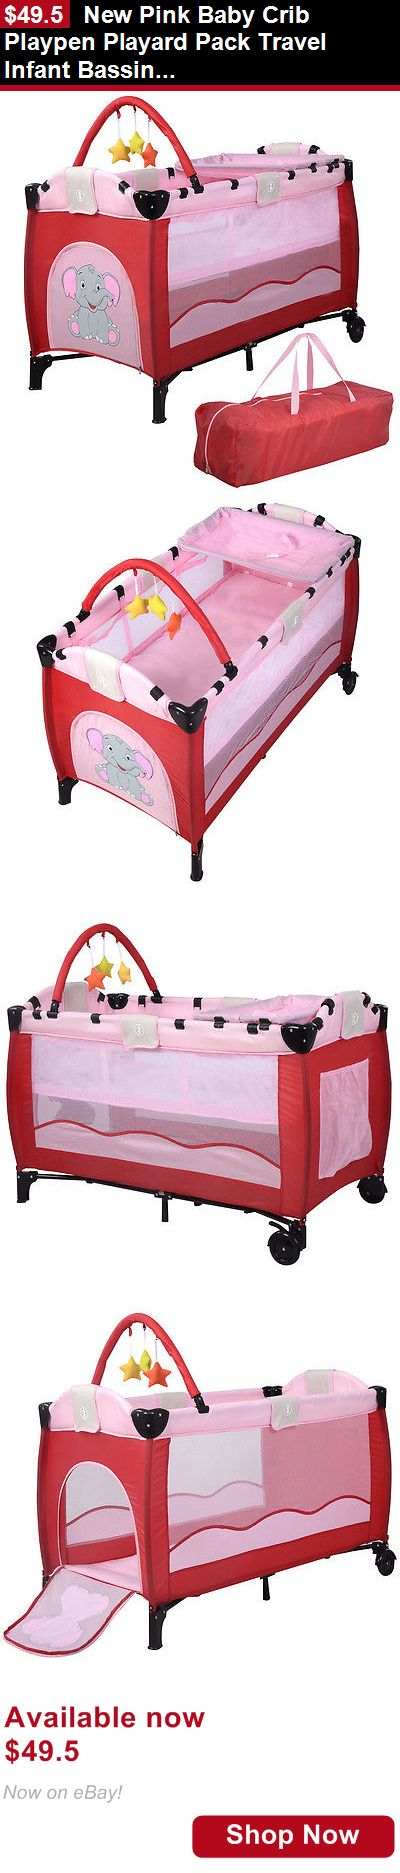 Baby Play pens and play yards: New Pink Baby Crib Playpen Playard Pack Travel Infant Bassinet Bed Foldable BUY IT NOW ONLY: $49.5